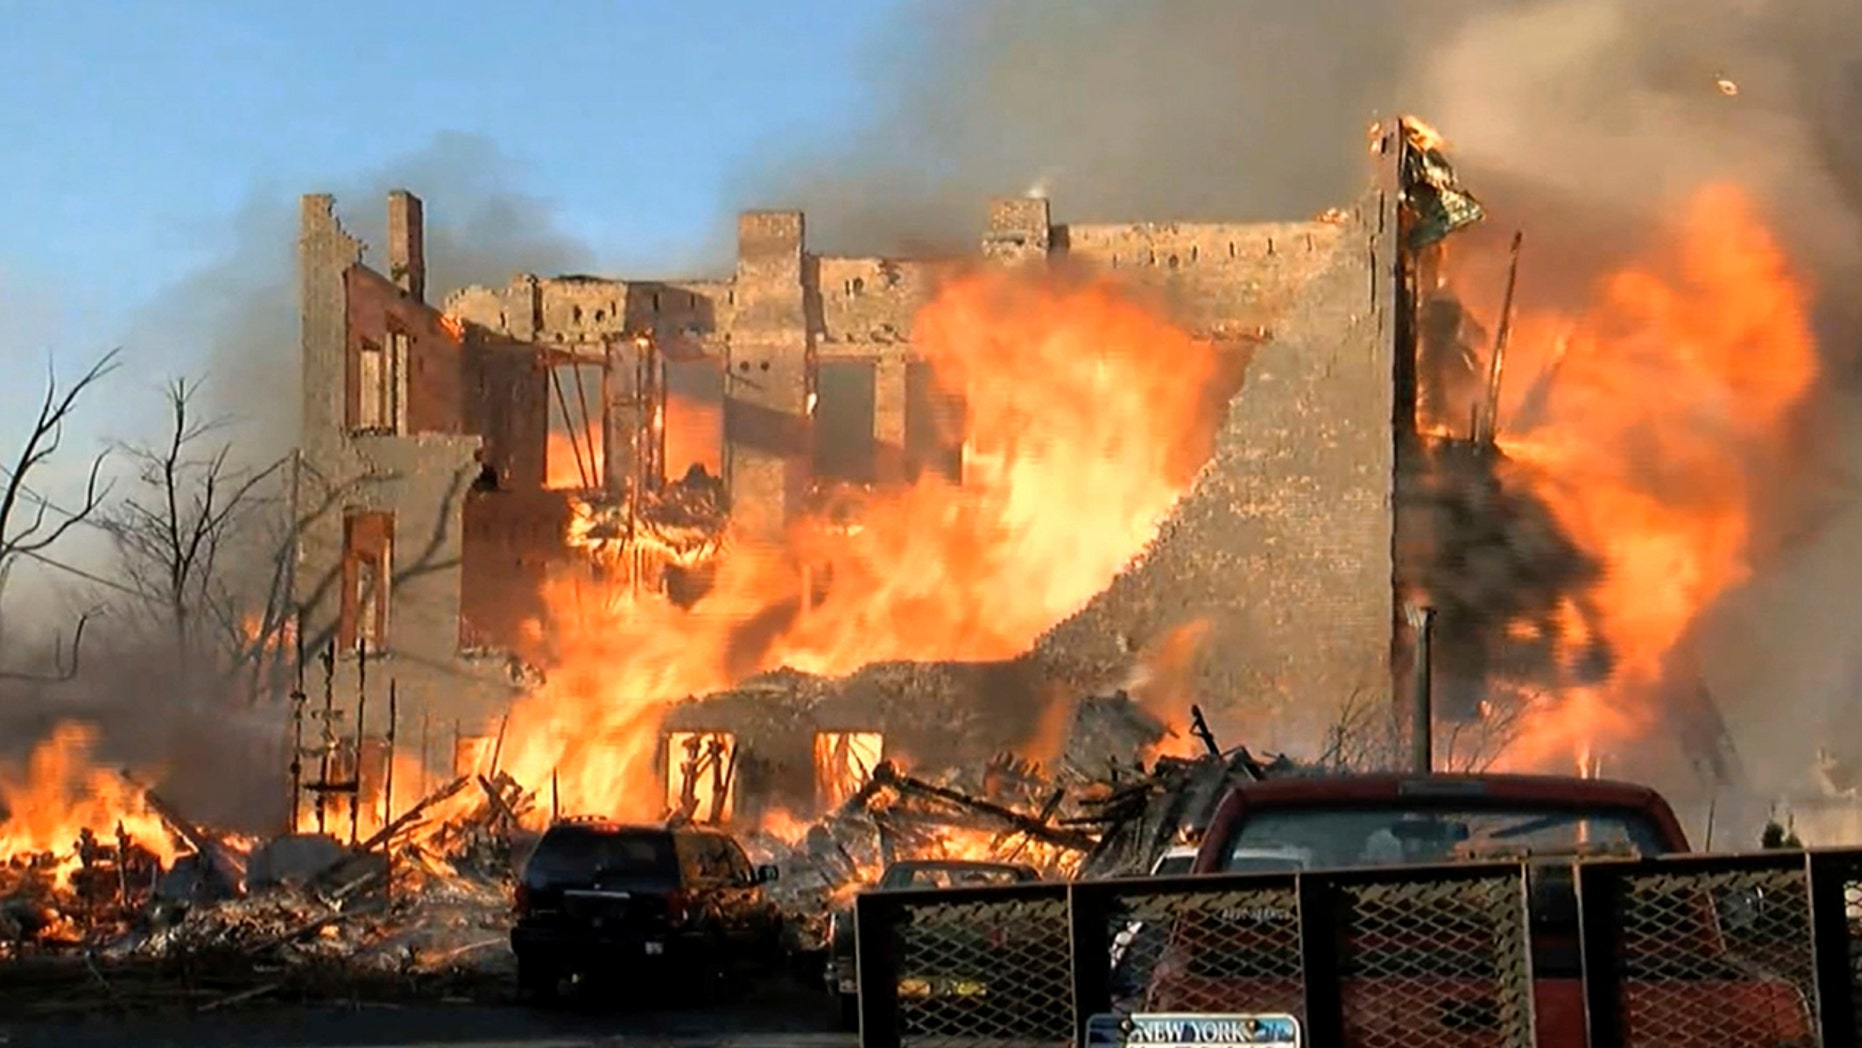 """In this image taken from video provided by WRGB-TV, Albany, a fire burns in buildings, Thursday, Nov. 30, 2017, in downtown Cohoes, N.Y. An inferno that destroyed or damaged nearly two dozen buildings in a city in upstate New York was sparked by an amateur bladesmith who apparently was trying to imitate something he saw on TV, officials said. """"It is the worst disaster the city has ever seen,"""" Mayor Shawn Morse told reporters at an evening news conference. (WRGB-TV, Albany via AP)"""